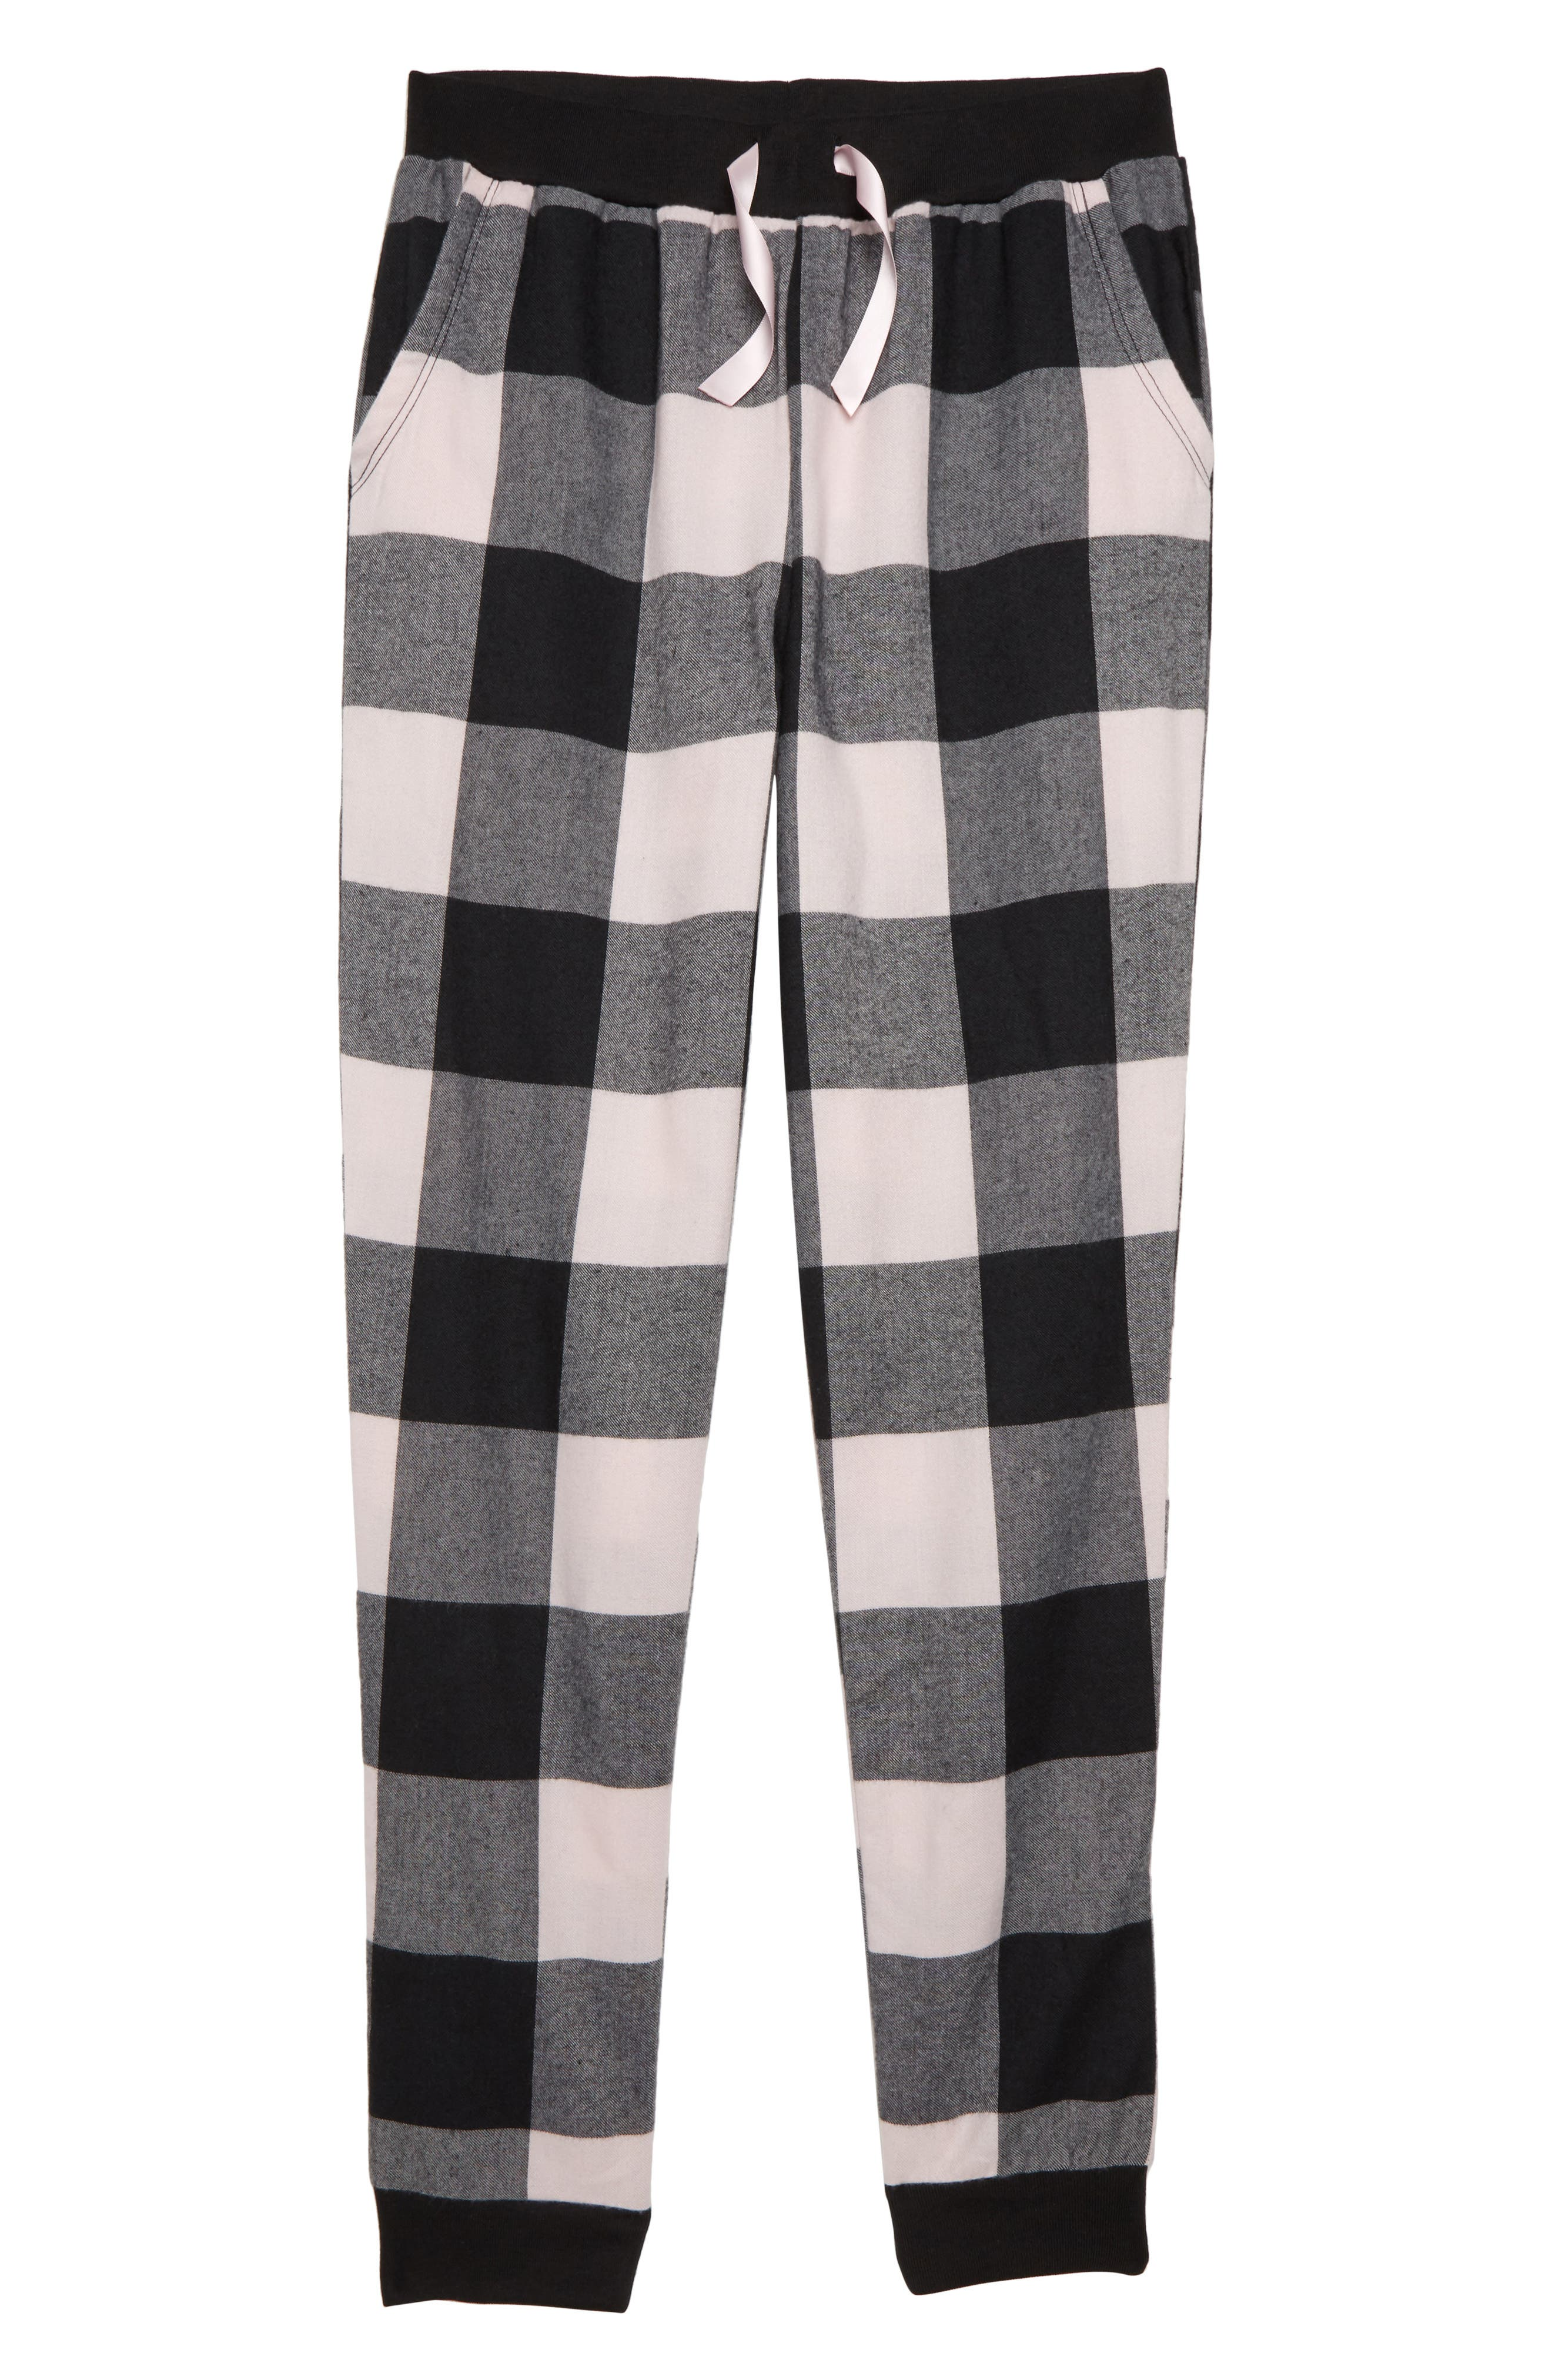 TUCKER + TATE,                             Flannel Pajama Pants,                             Main thumbnail 1, color,                             BLACK- PINK PLAID